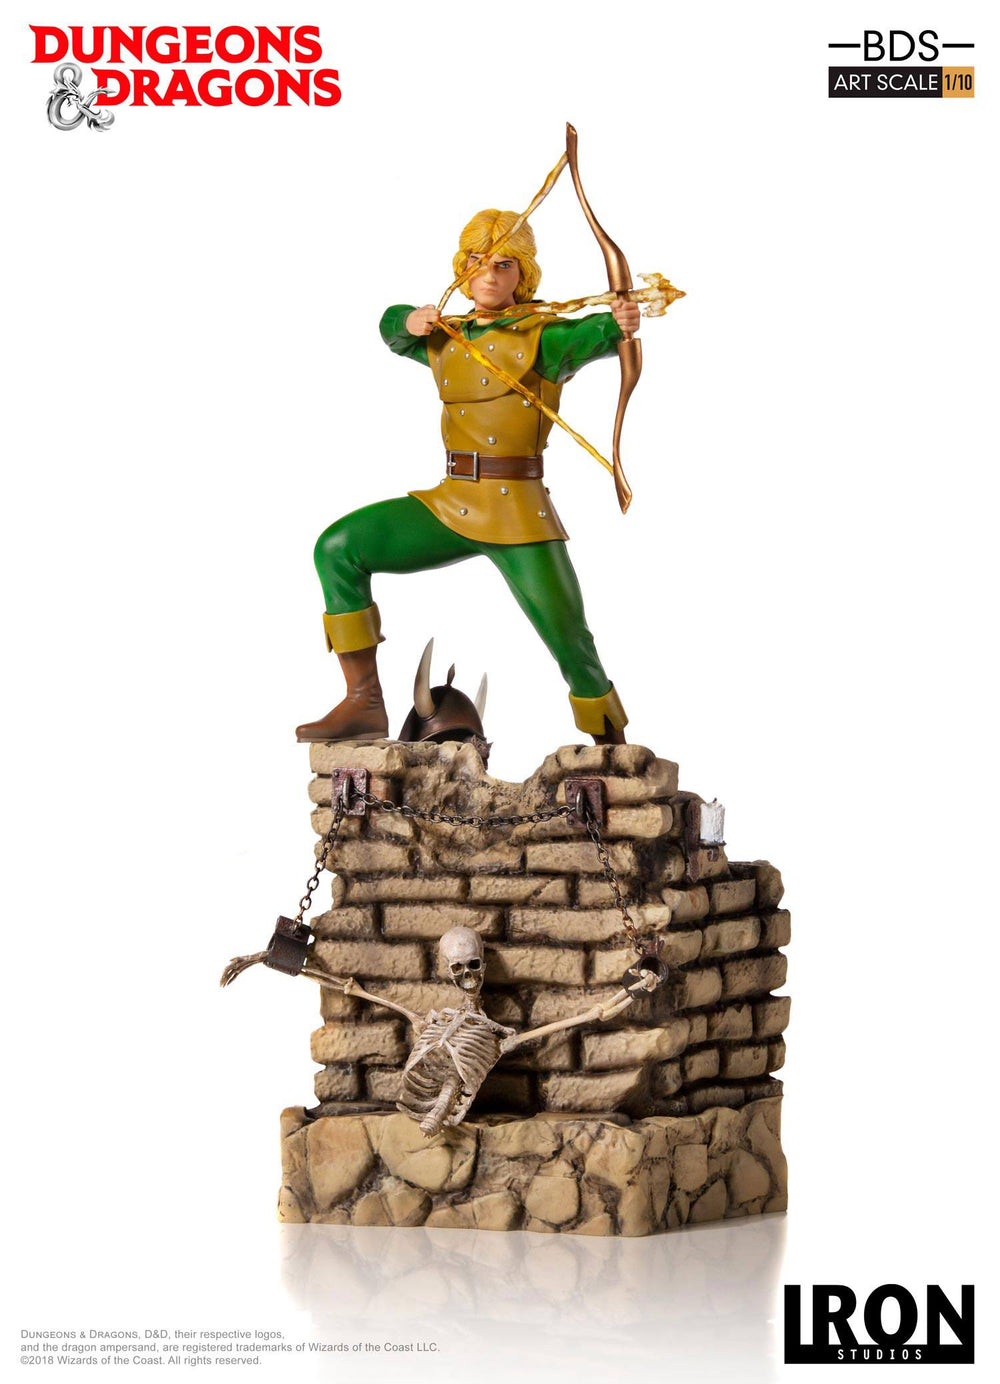 Iron Studios Dungeons & Dragons Hank the Ranger Battle Diorama Series 1/10 Statue